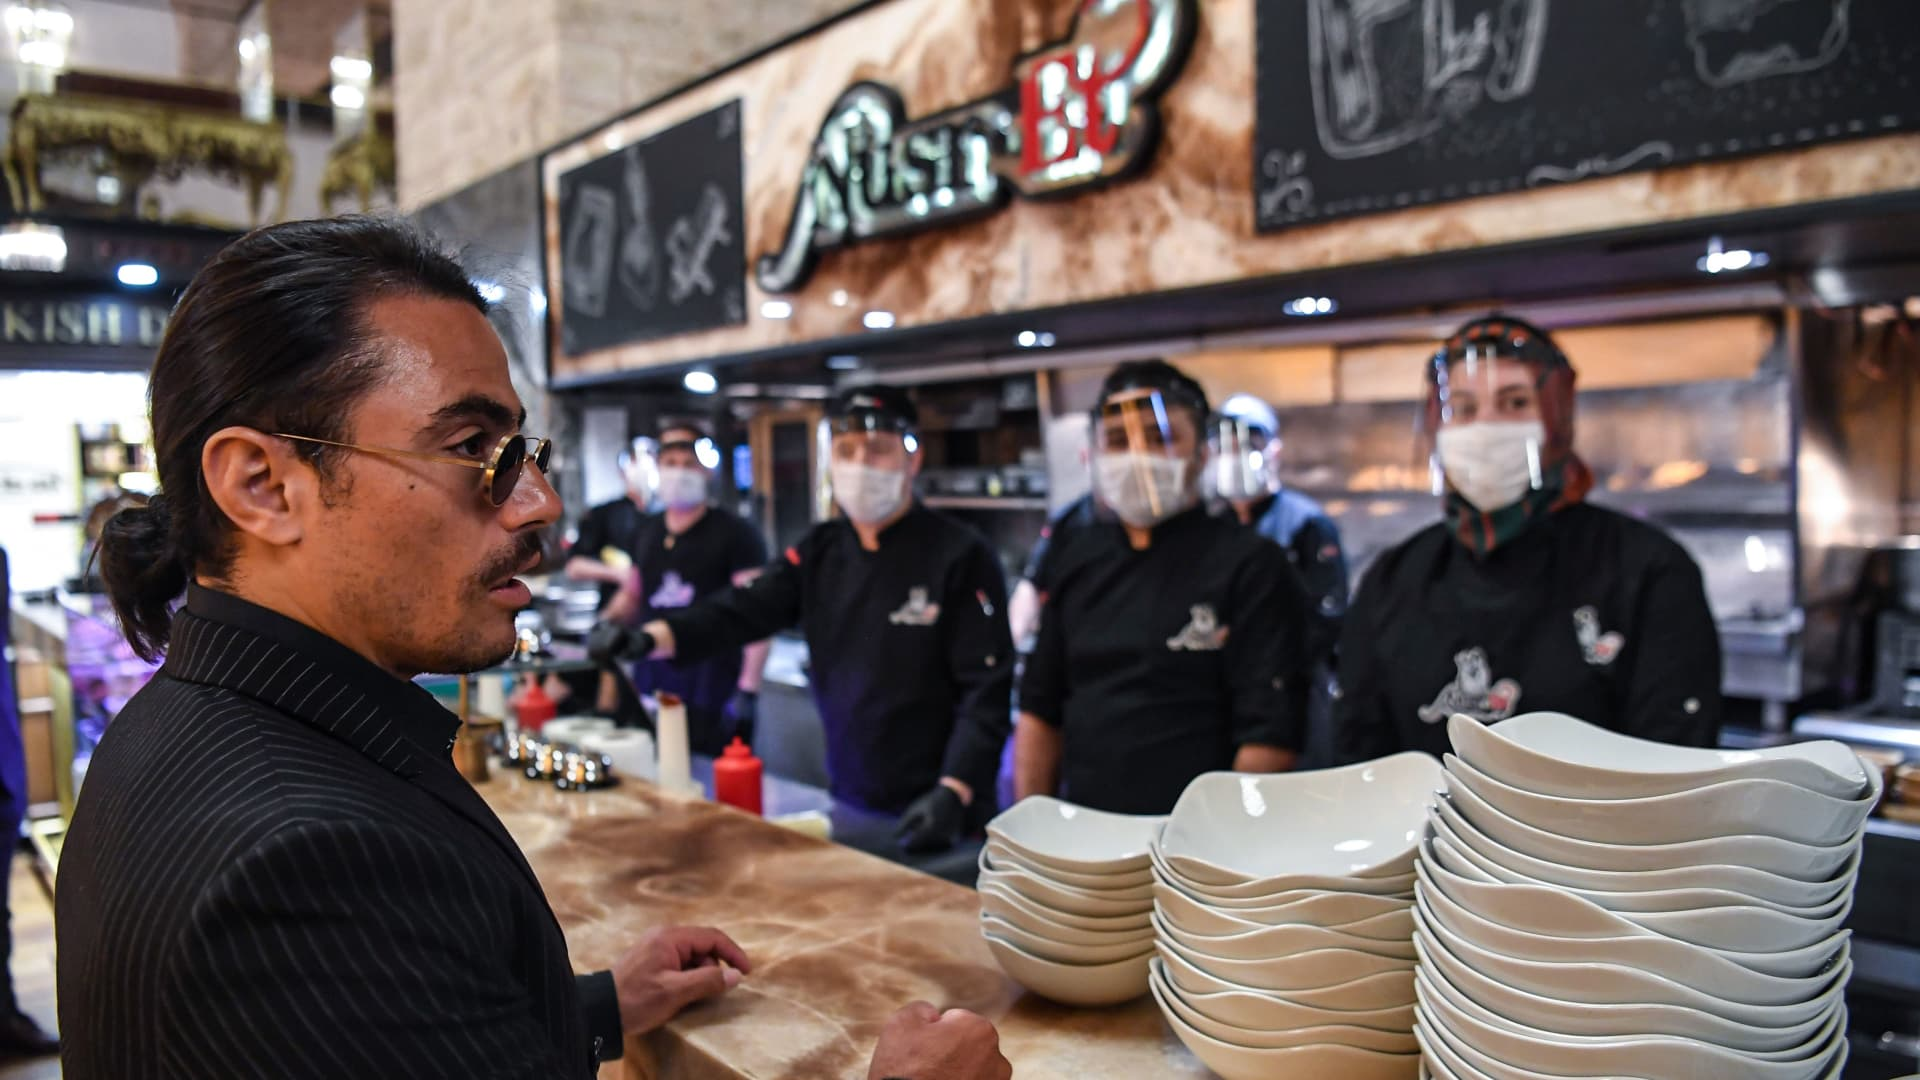 Turkish restaurateur Nusret Gokce, also known as 'Salt Bae', speaks to his staff at his restaurant 'Nusr-Et' at the Grand Bazaar after its reopening on June 1, 2020 in Istanbul.